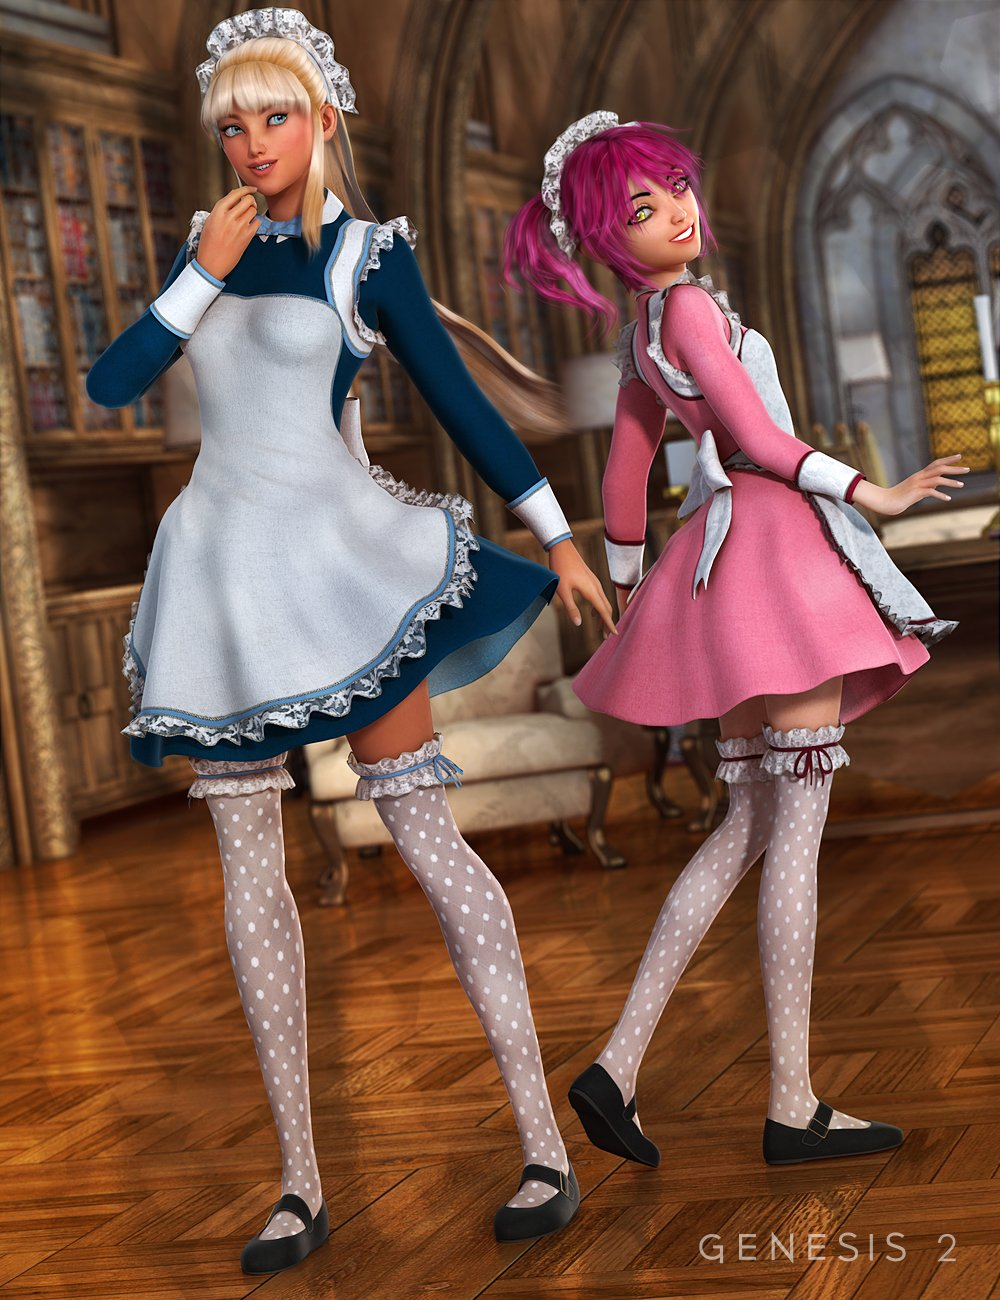 The Maid Outfit Textures by: Sarsa, 3D Models by Daz 3D